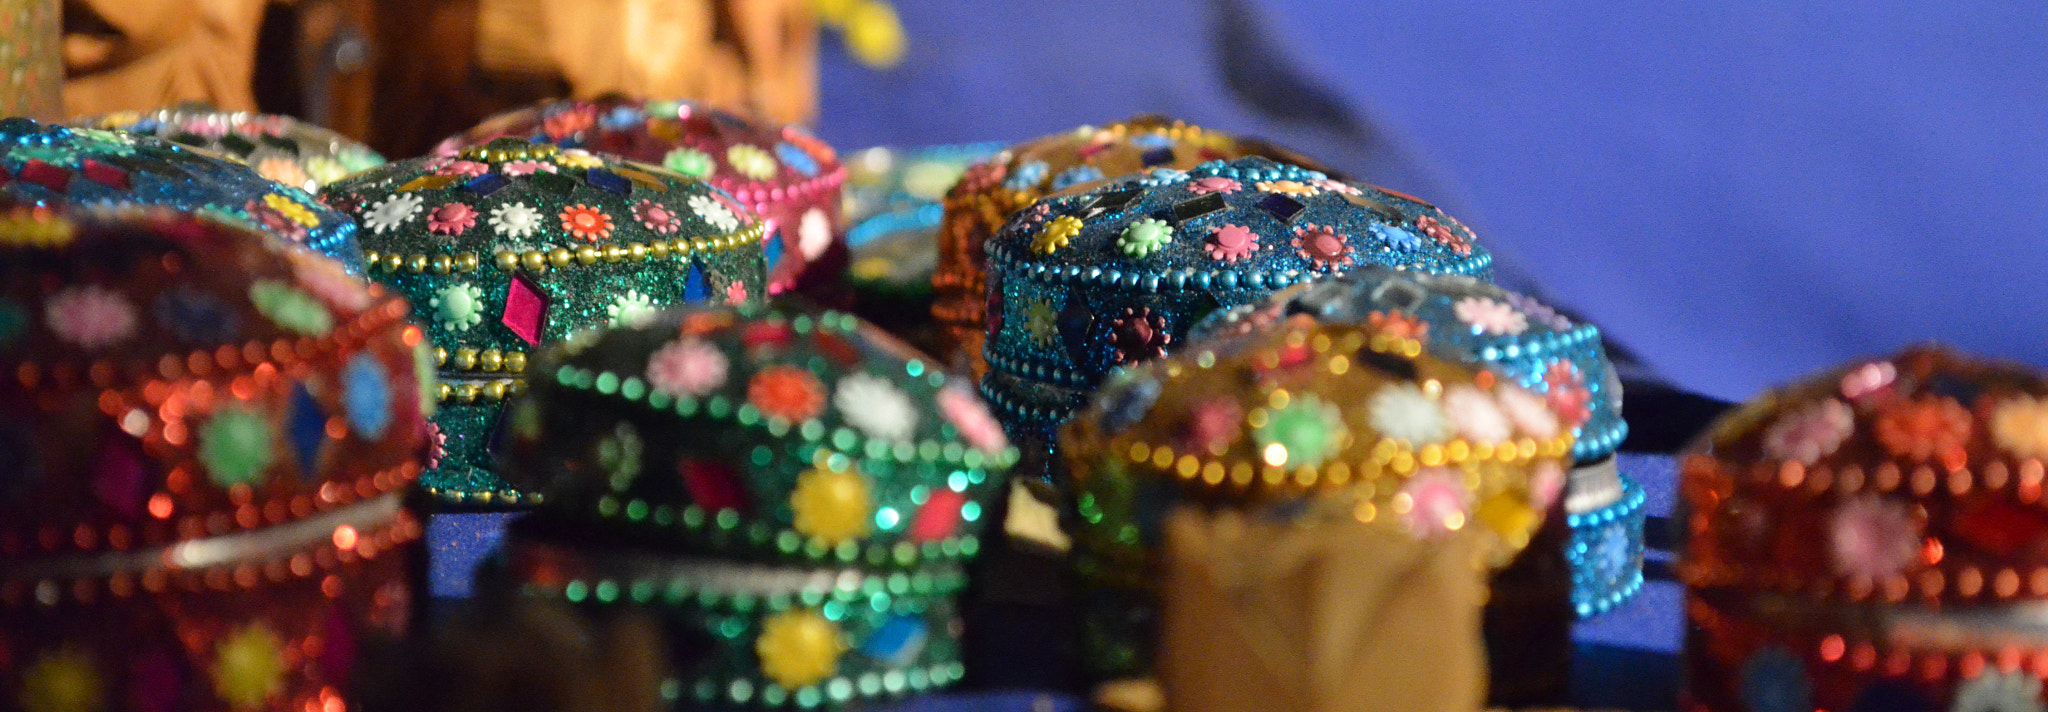 Photograph Jeweled Boxes by Yash Babar on 500px